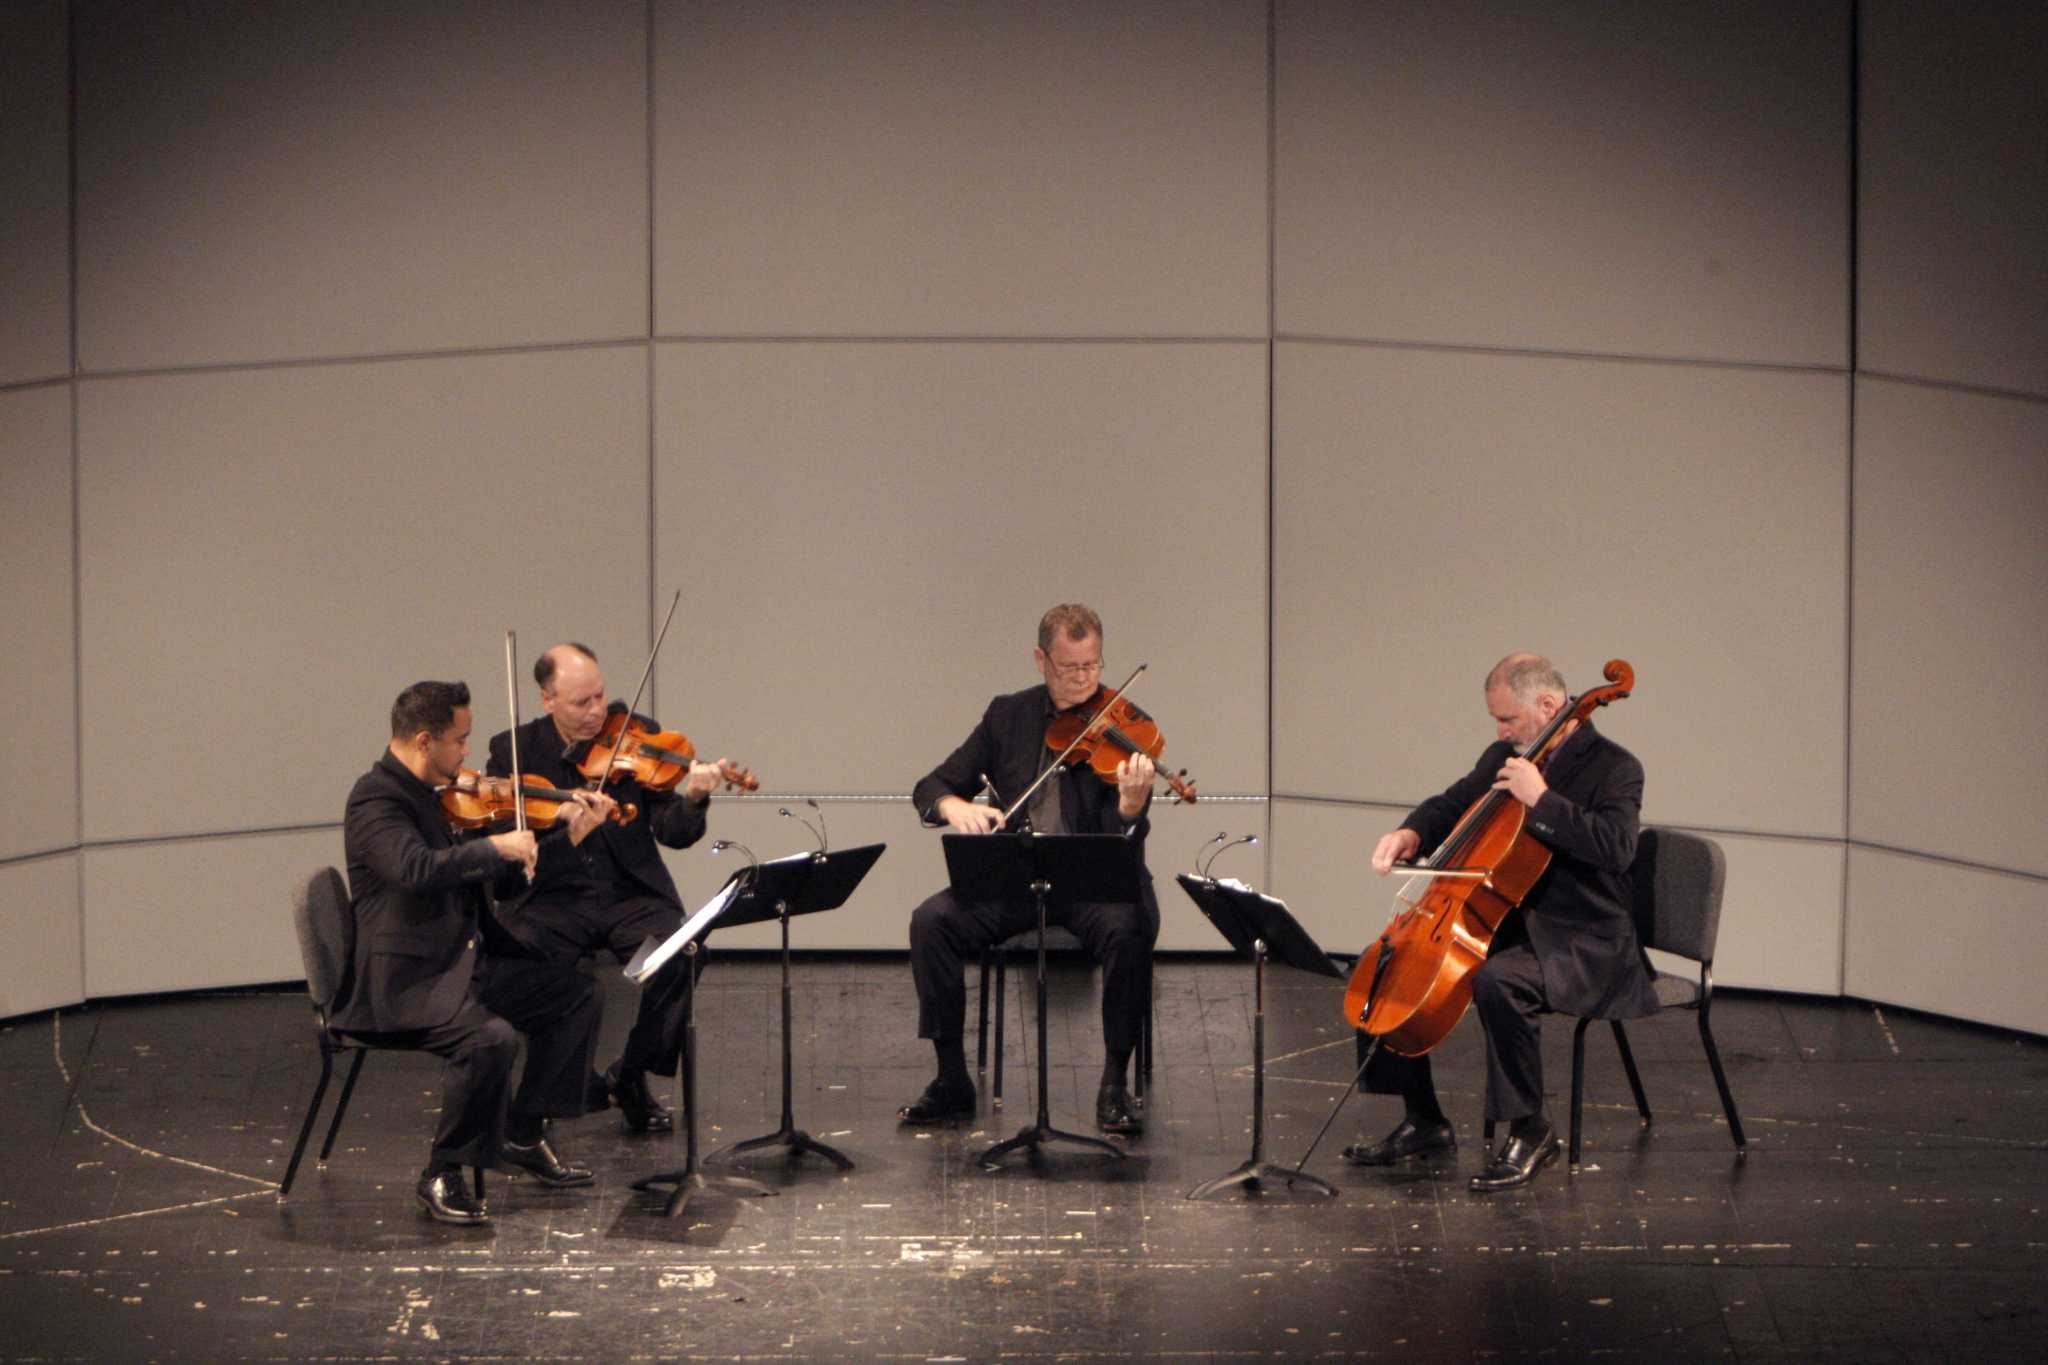 The Alexander String Quartet, starting from the left: Zakarias Grafilo on the violin, Frederick Lifsitz on the second violin, Paul Yarbrough on the viola and Sandy Wilson on the cello, perform at the Mckenna Theatre during the Liberal & Creative Arts Opening Day Festival at SF State in San Francisco, Calif., on Sunday, Sept. 28, 2014.